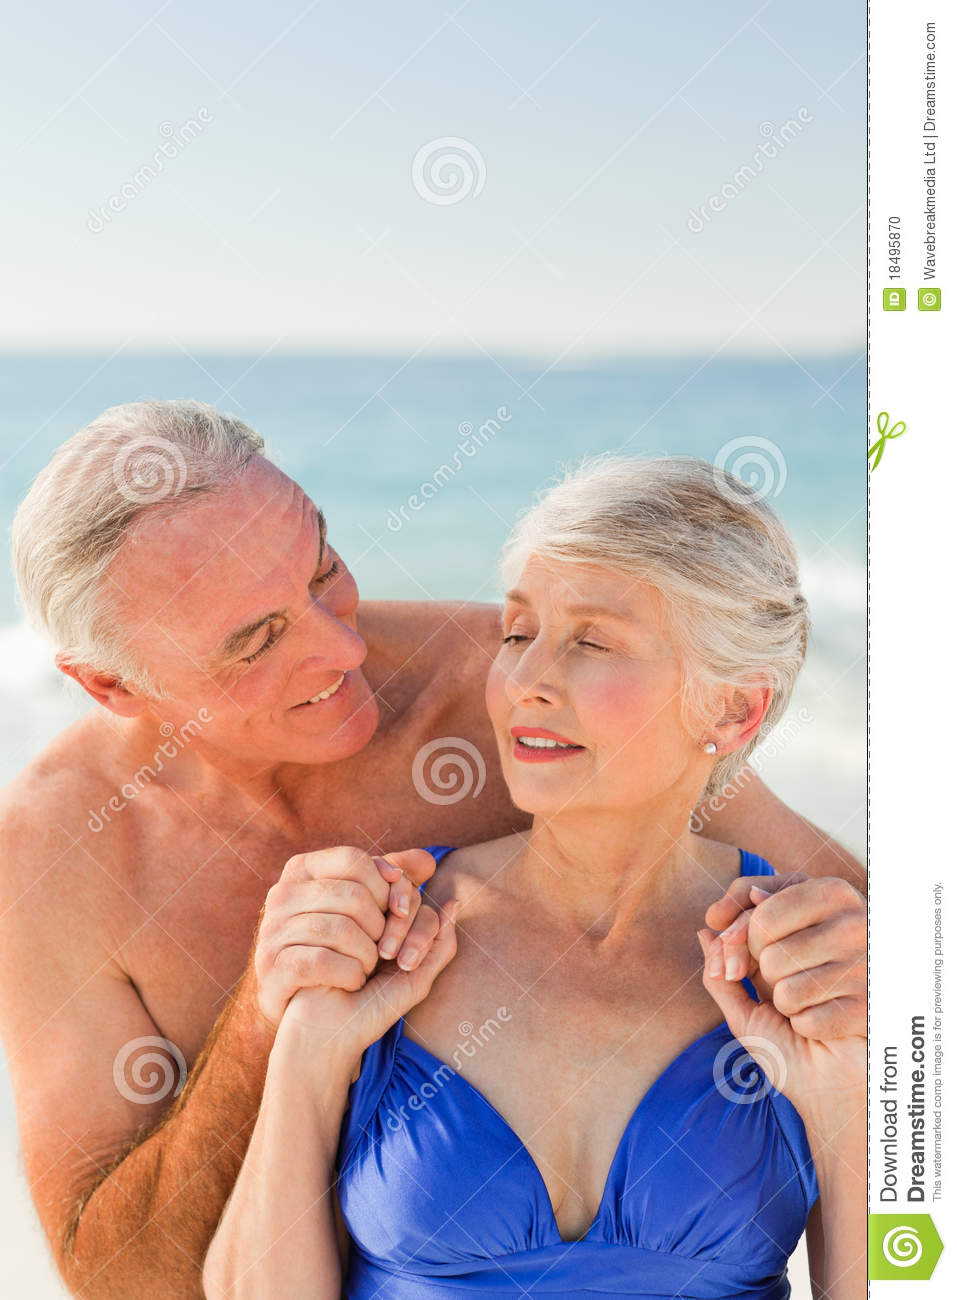 Man Hugging His Wife At The Beach Stock Photo   Image  18495870